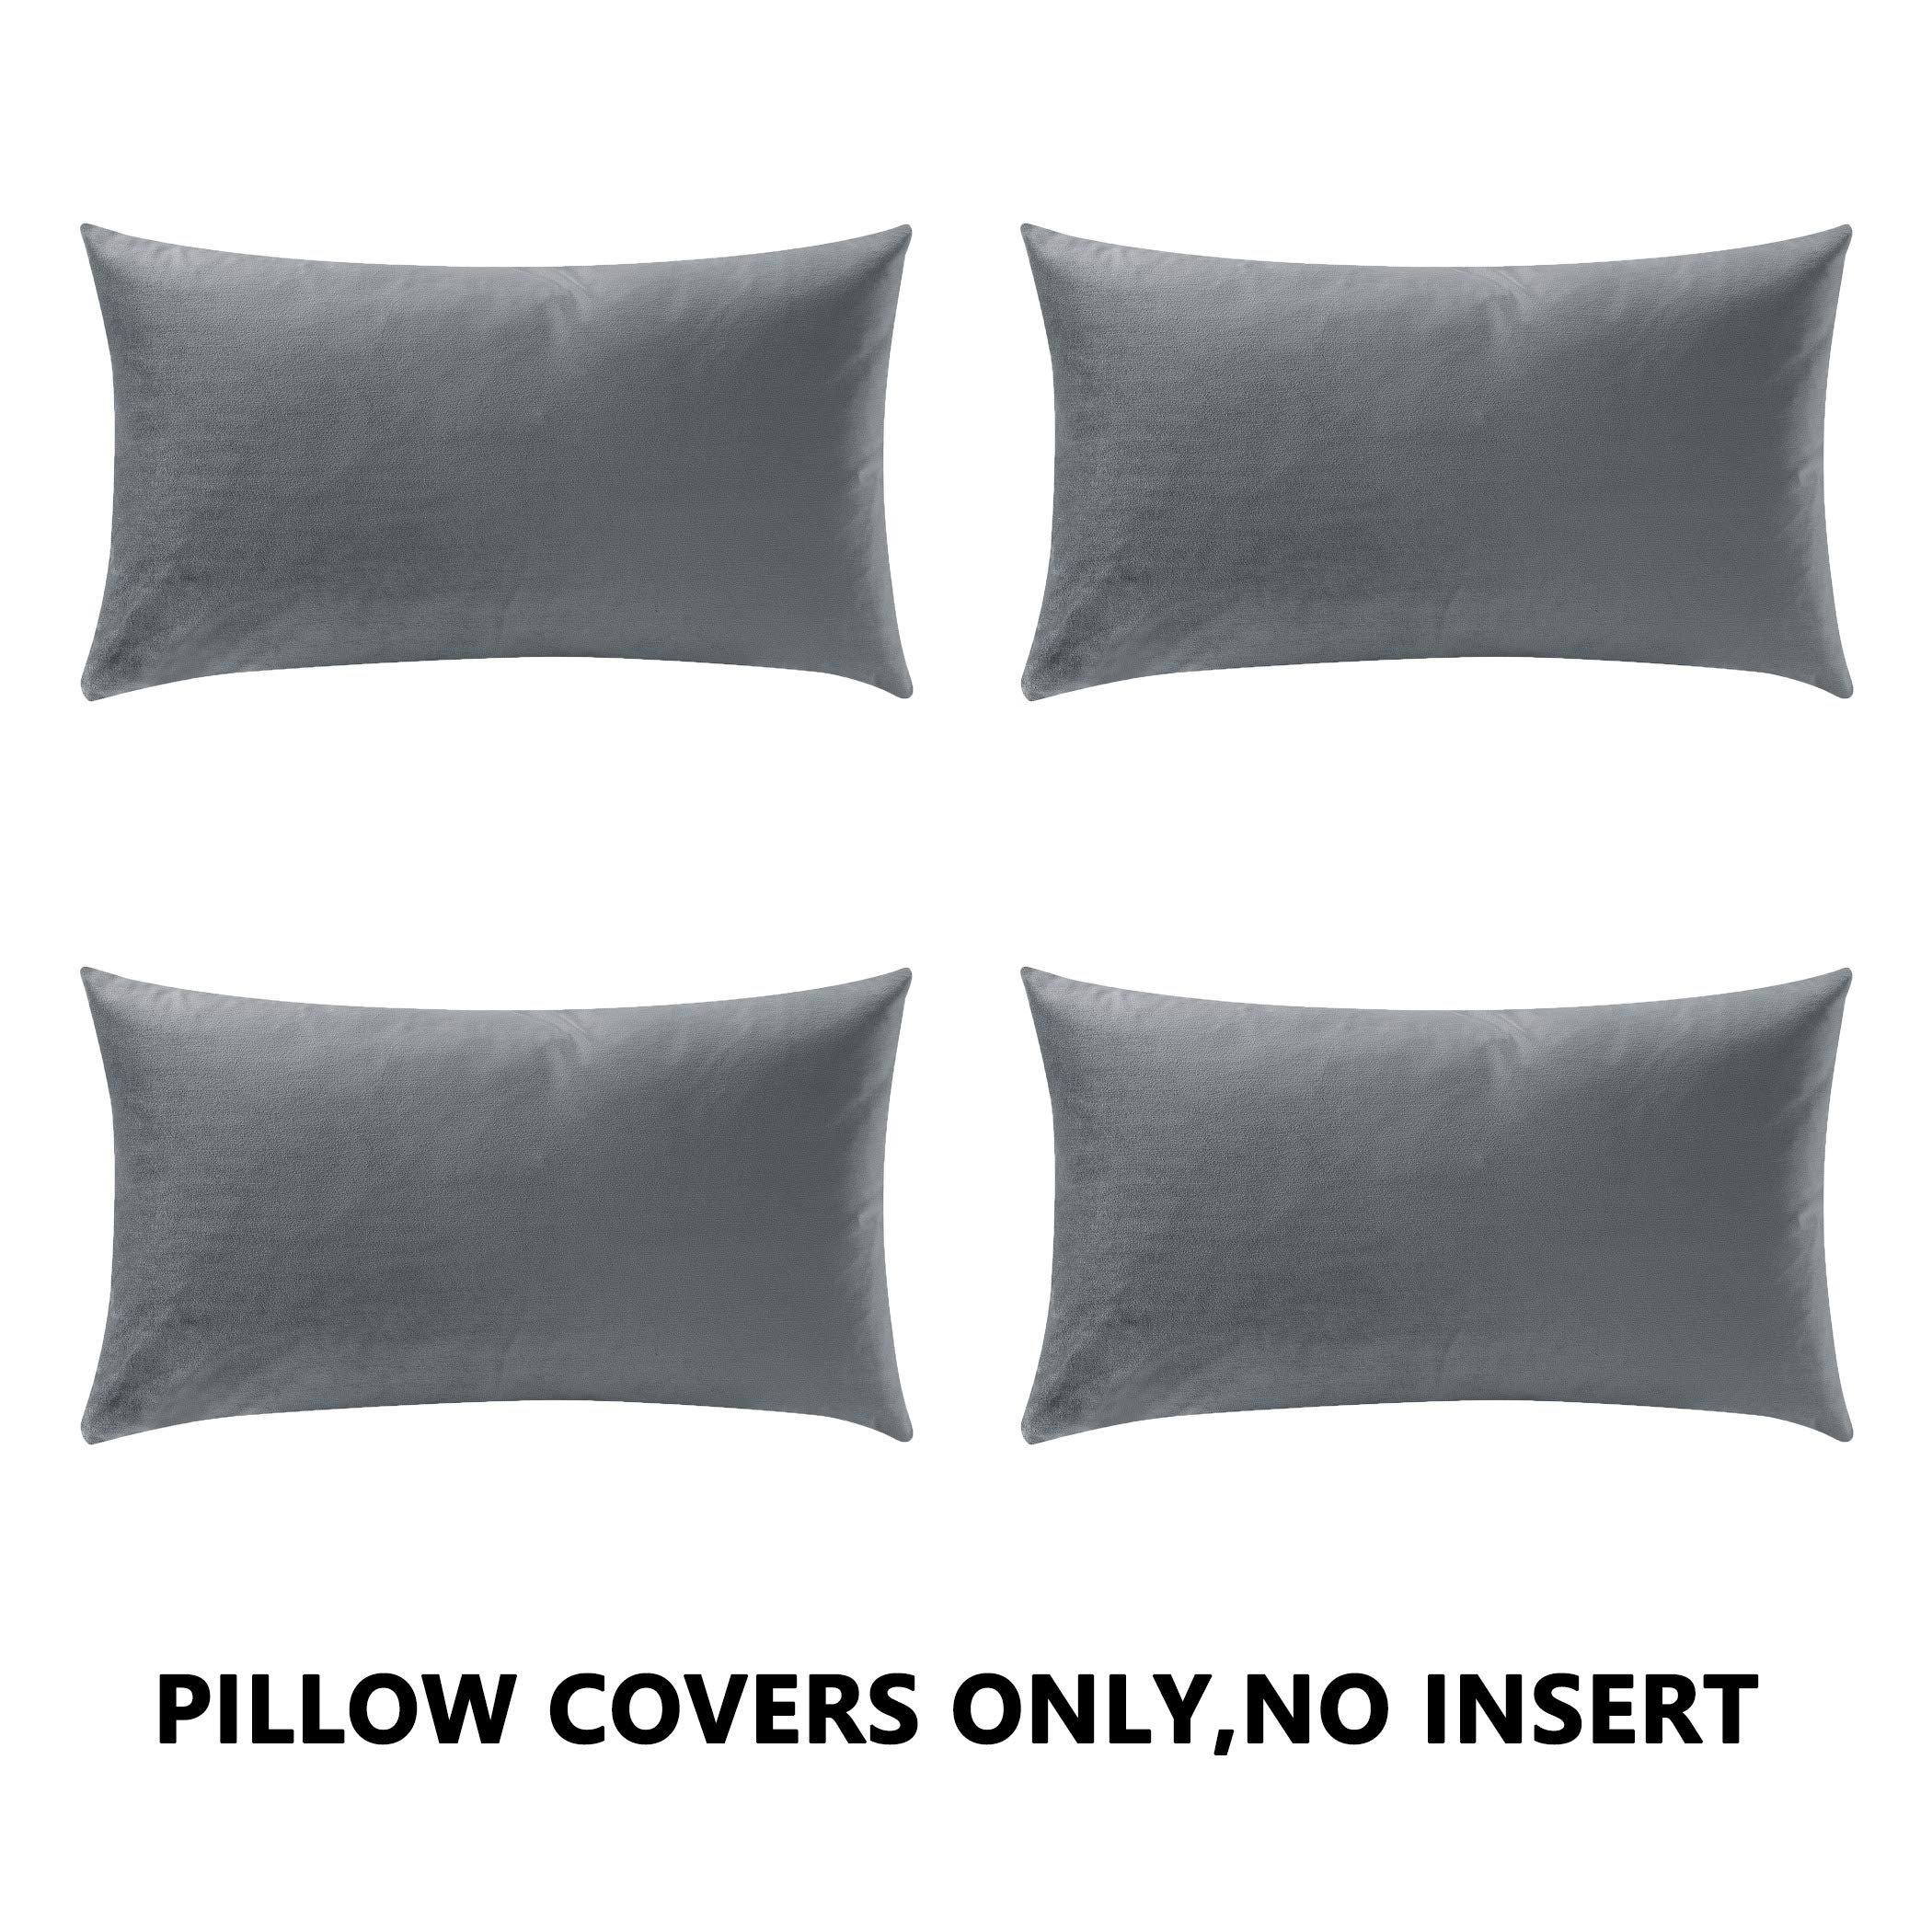 COMFORTLAND New Year/Christmas Decorative Pillow Covers 12x20 Grey: 4 Pack Cozy Soft Velvet Rectangular Throw Pillow Cases for Farmhouse Sofa Couch Bed Chair Home Decor Decorations